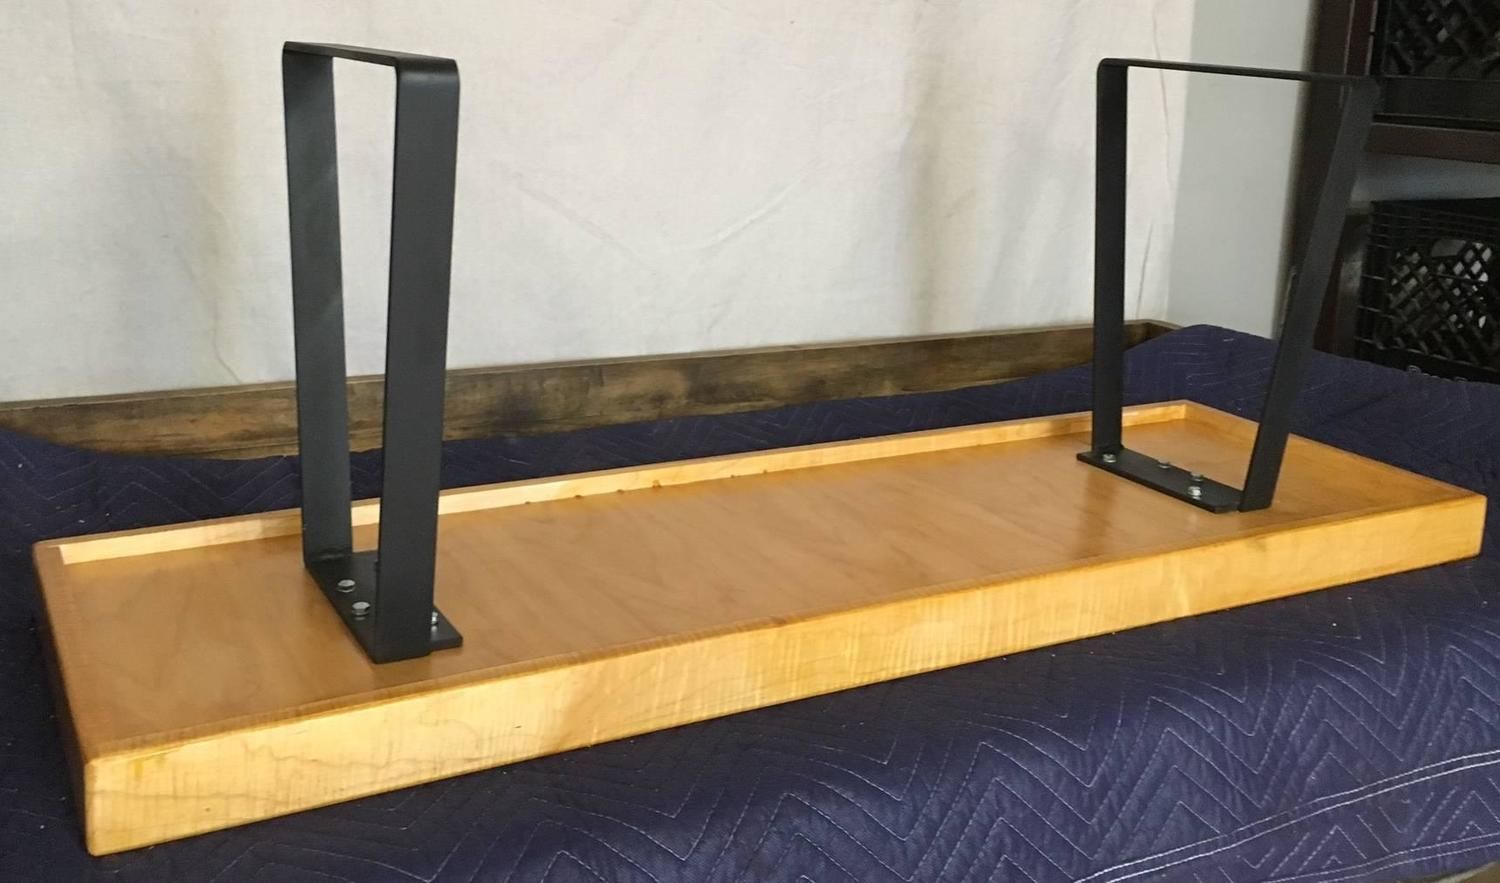 chair steel bracket covers for ikea jennylund bench from gymnasium gym flooring with legs